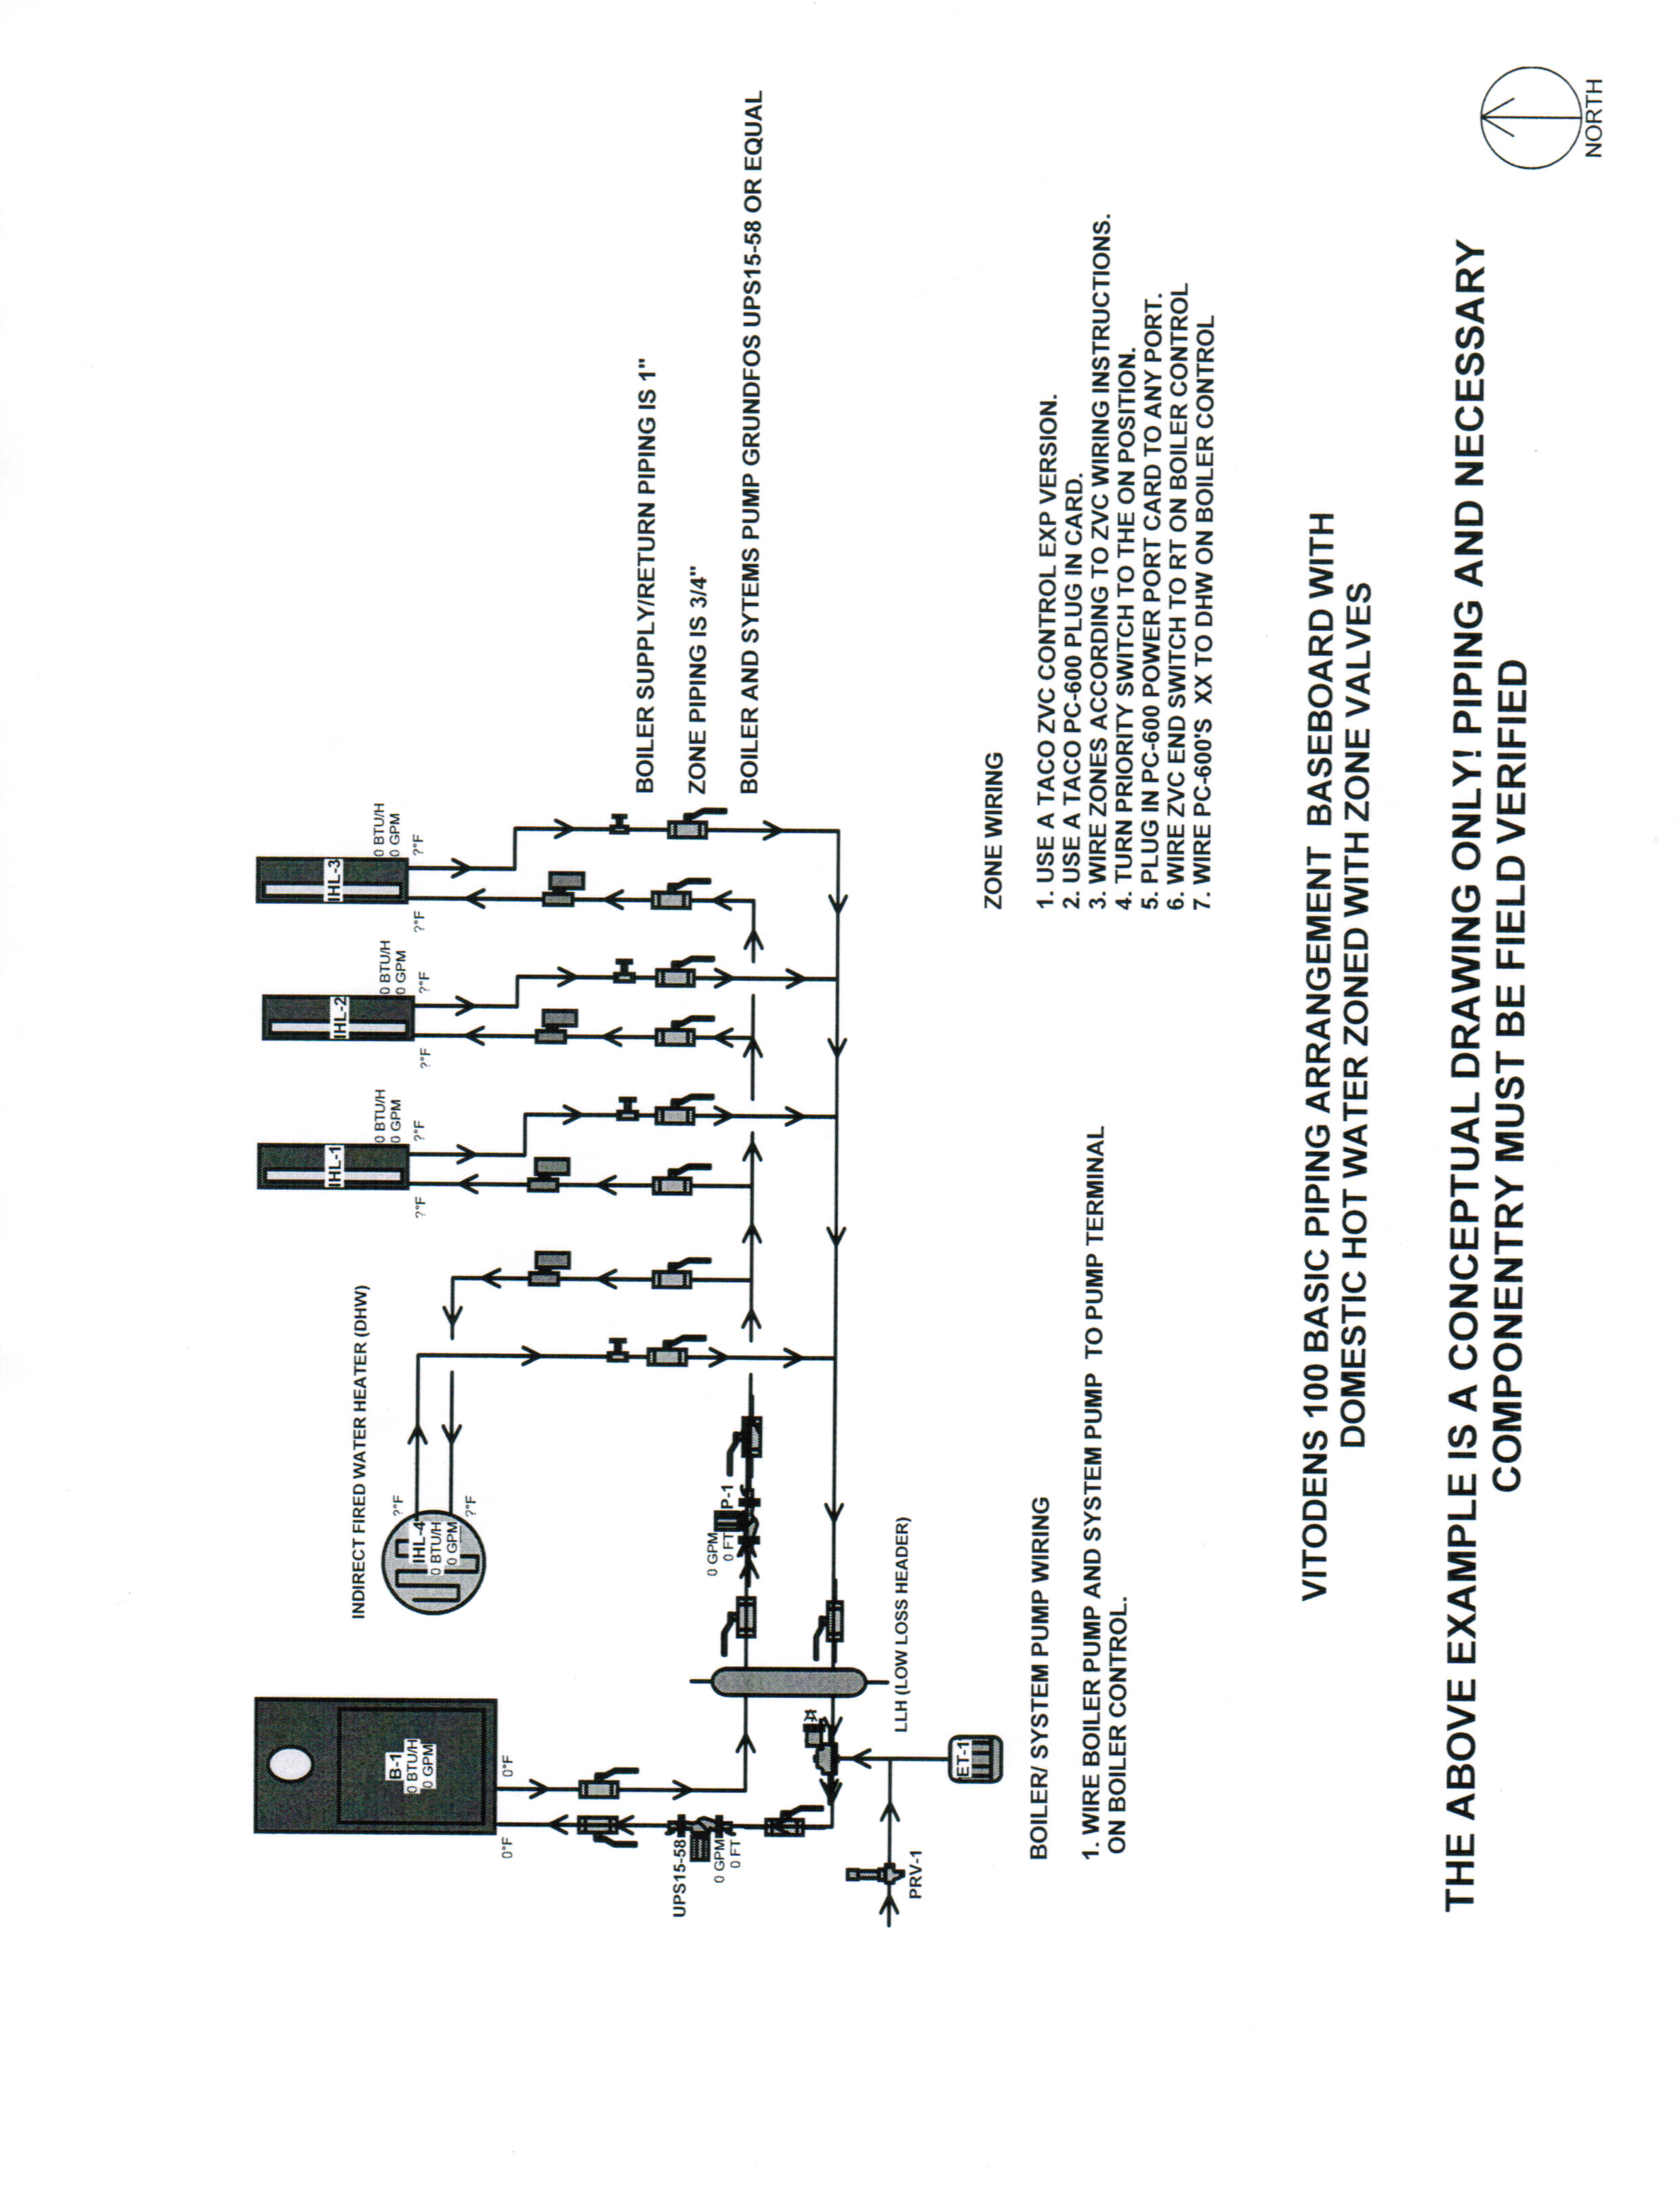 wiring diagram zone valve thermostat wiring image wiring zone valves solidfonts on wiring diagram zone valve thermostat